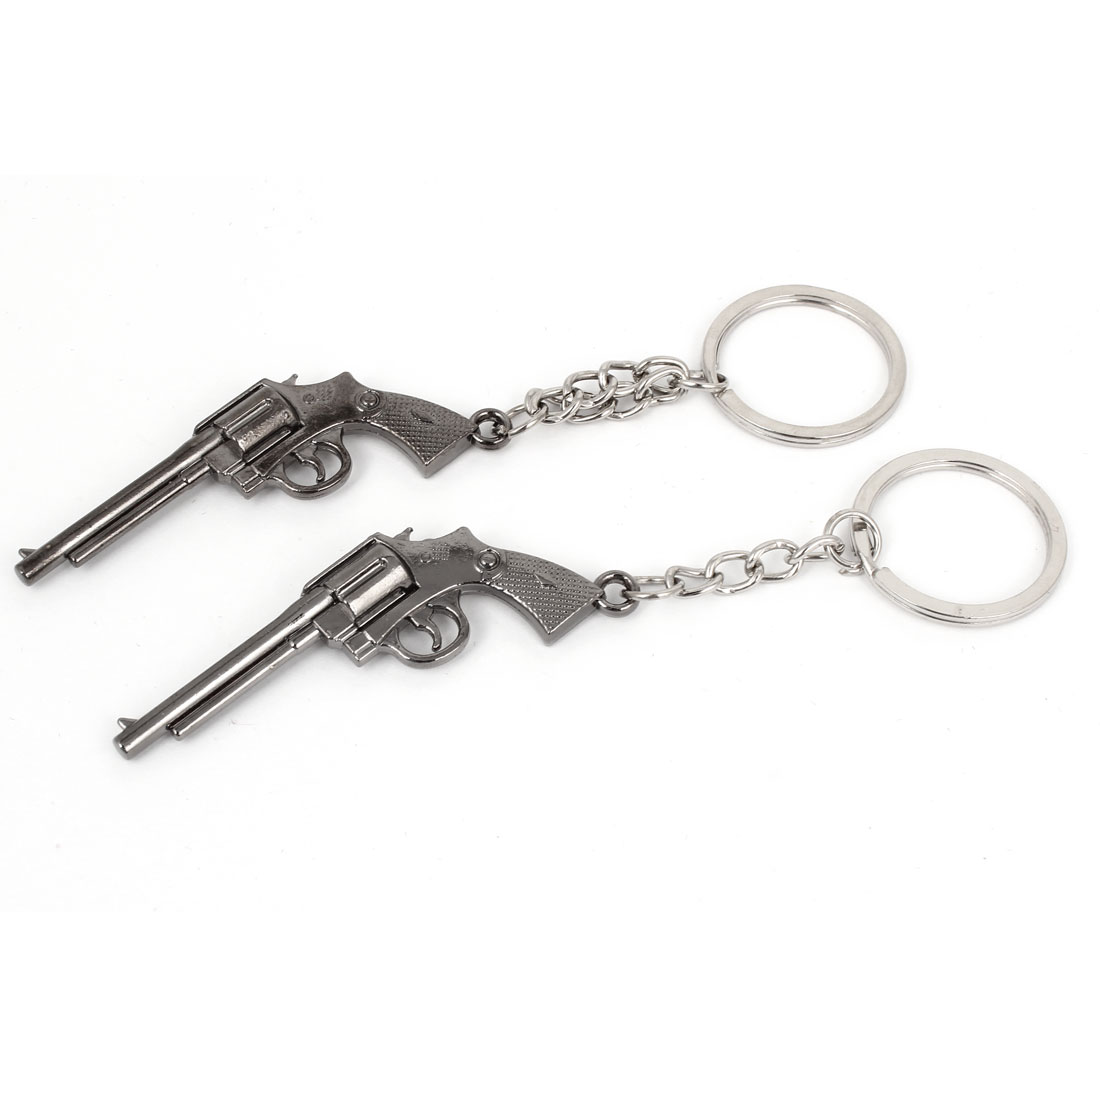 Silver Tone Single Ring Handgun Design Pendants Metal Key Holder Keychain 2pcs